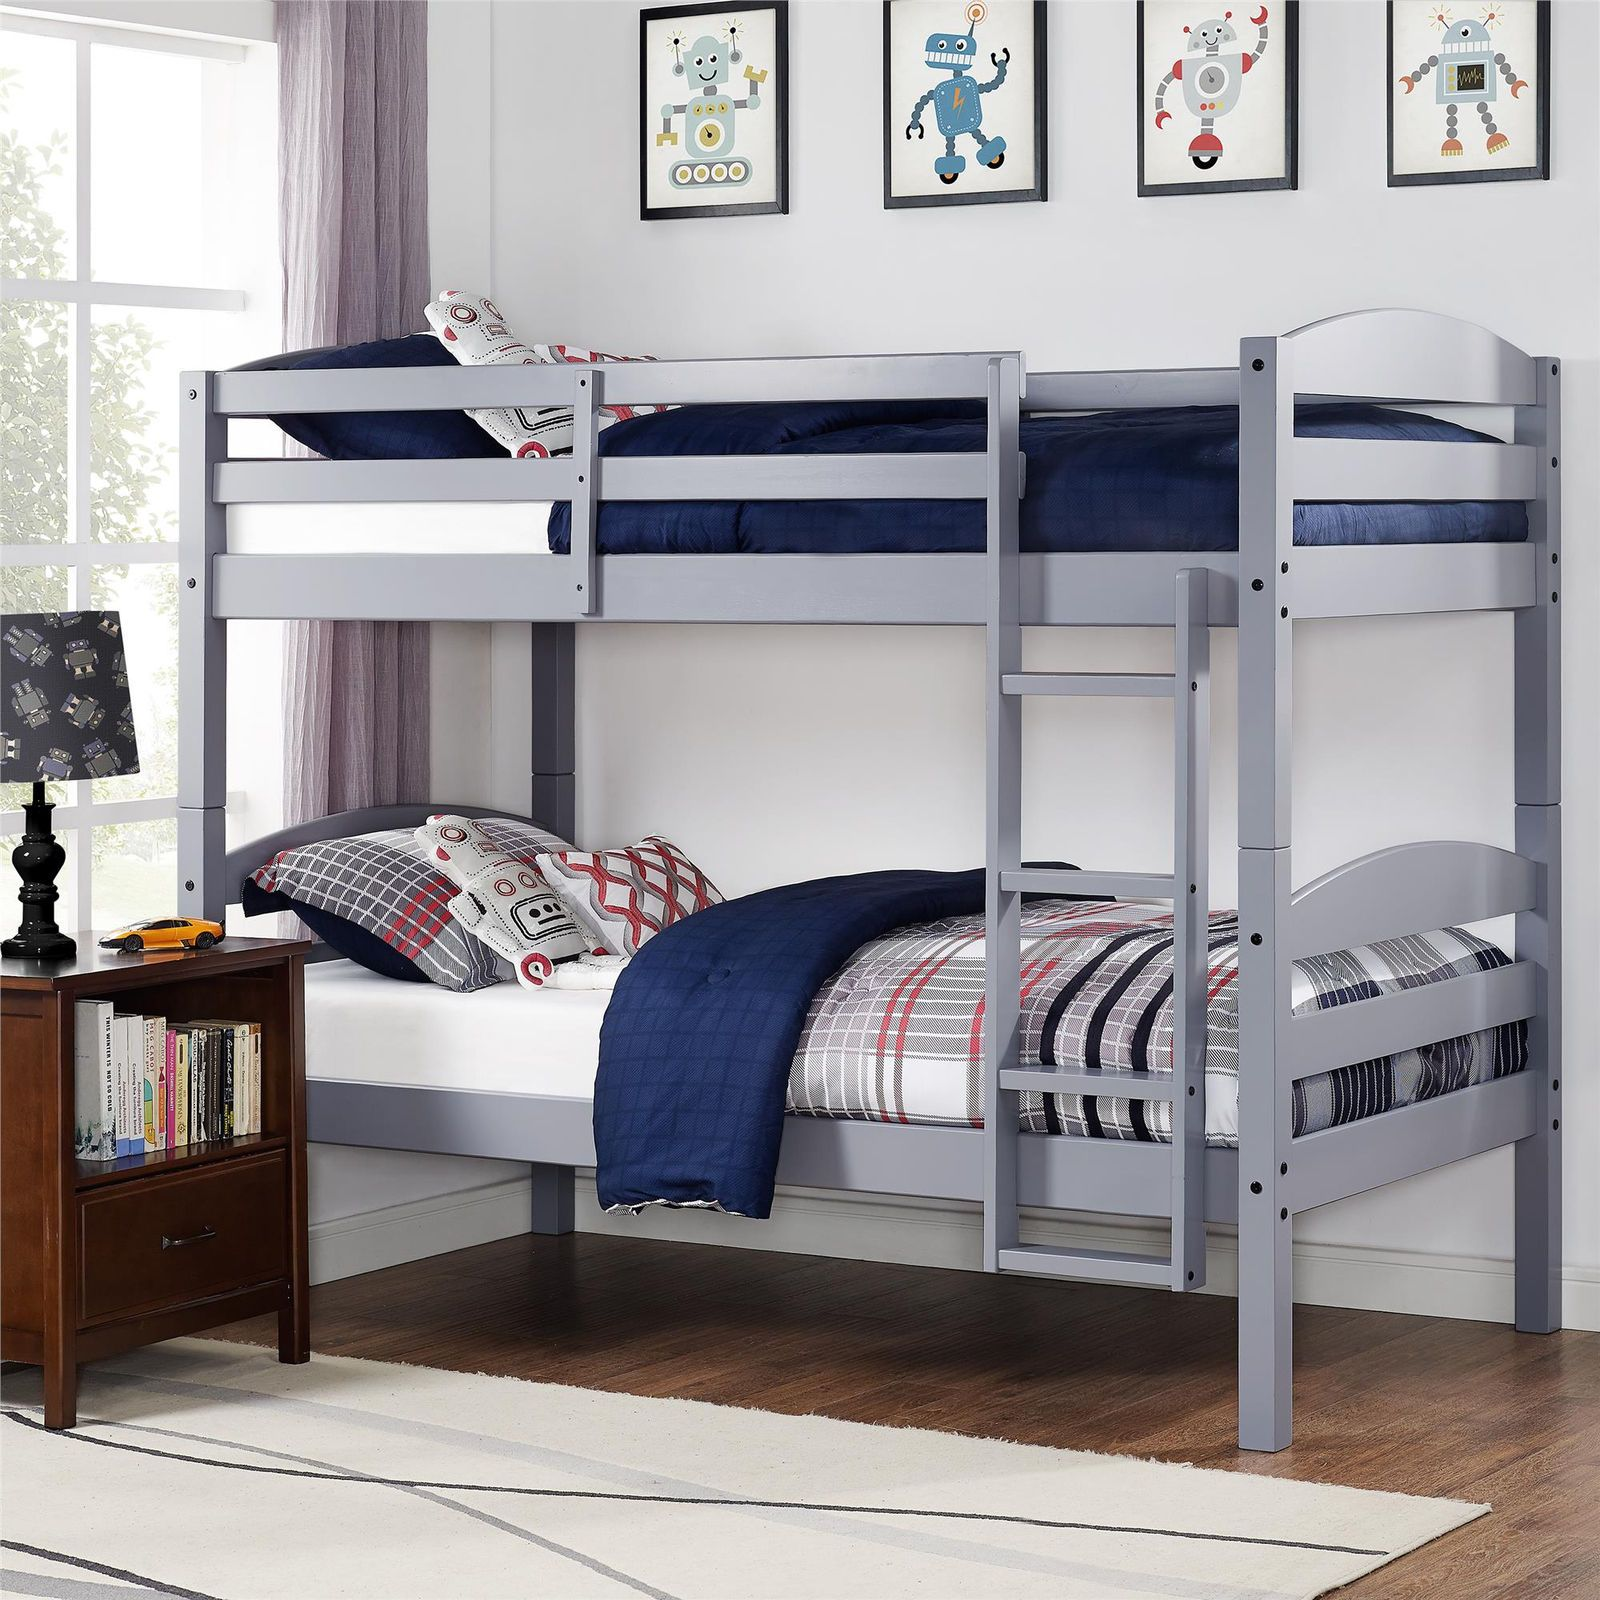 Stackable Twin Beds Twin Sized Bunk Bed Stackable And Separable With Step Ladder